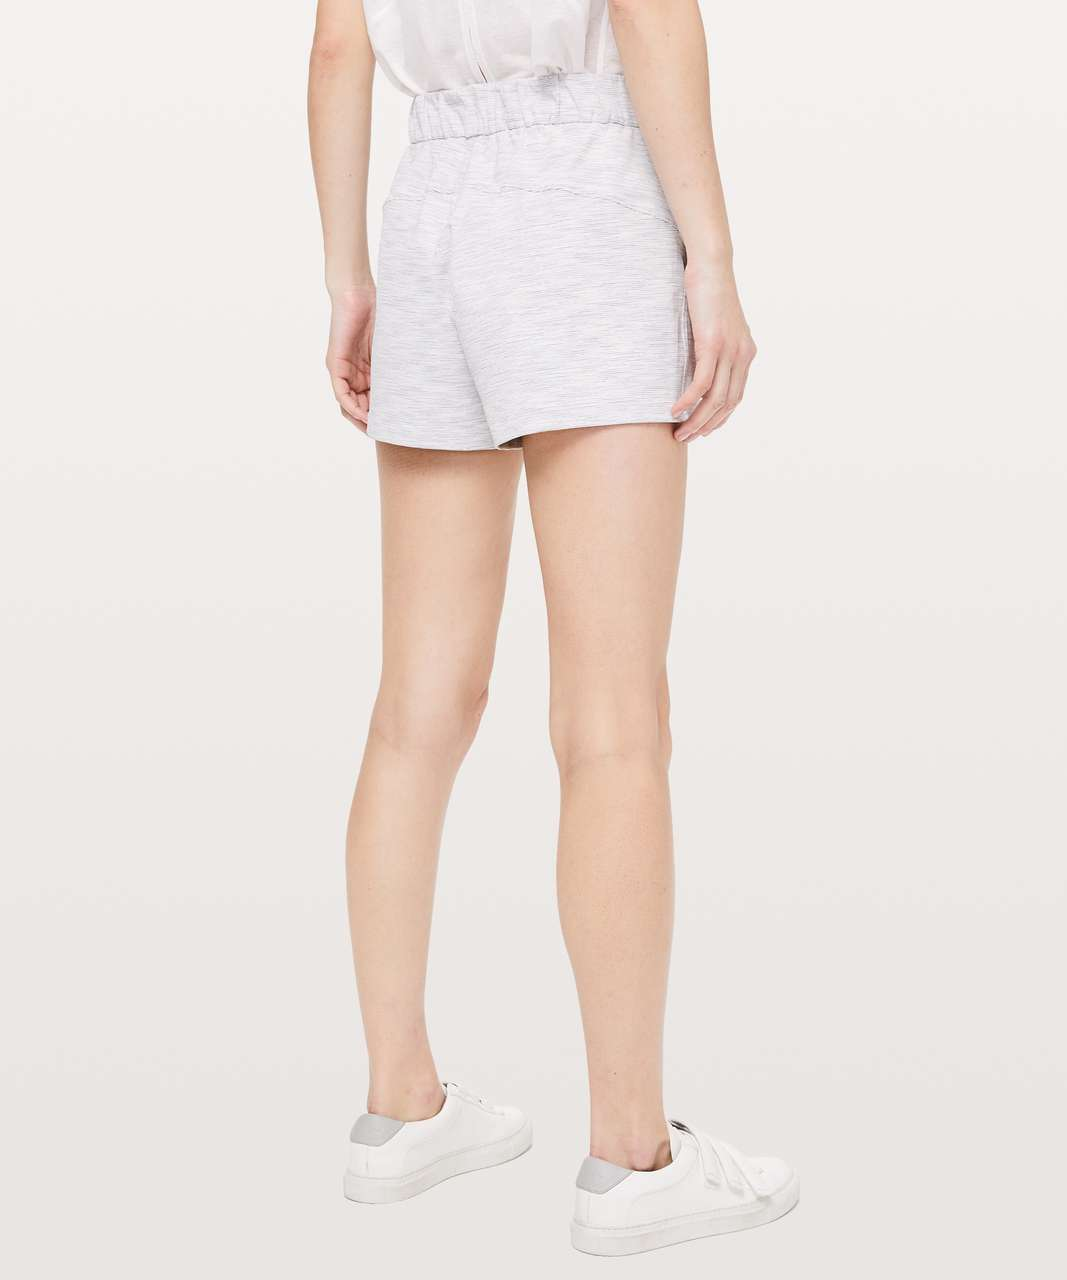 """Lululemon On The Fly Short *2.5"""" - Wee Are From Space Nimbus Battleship"""